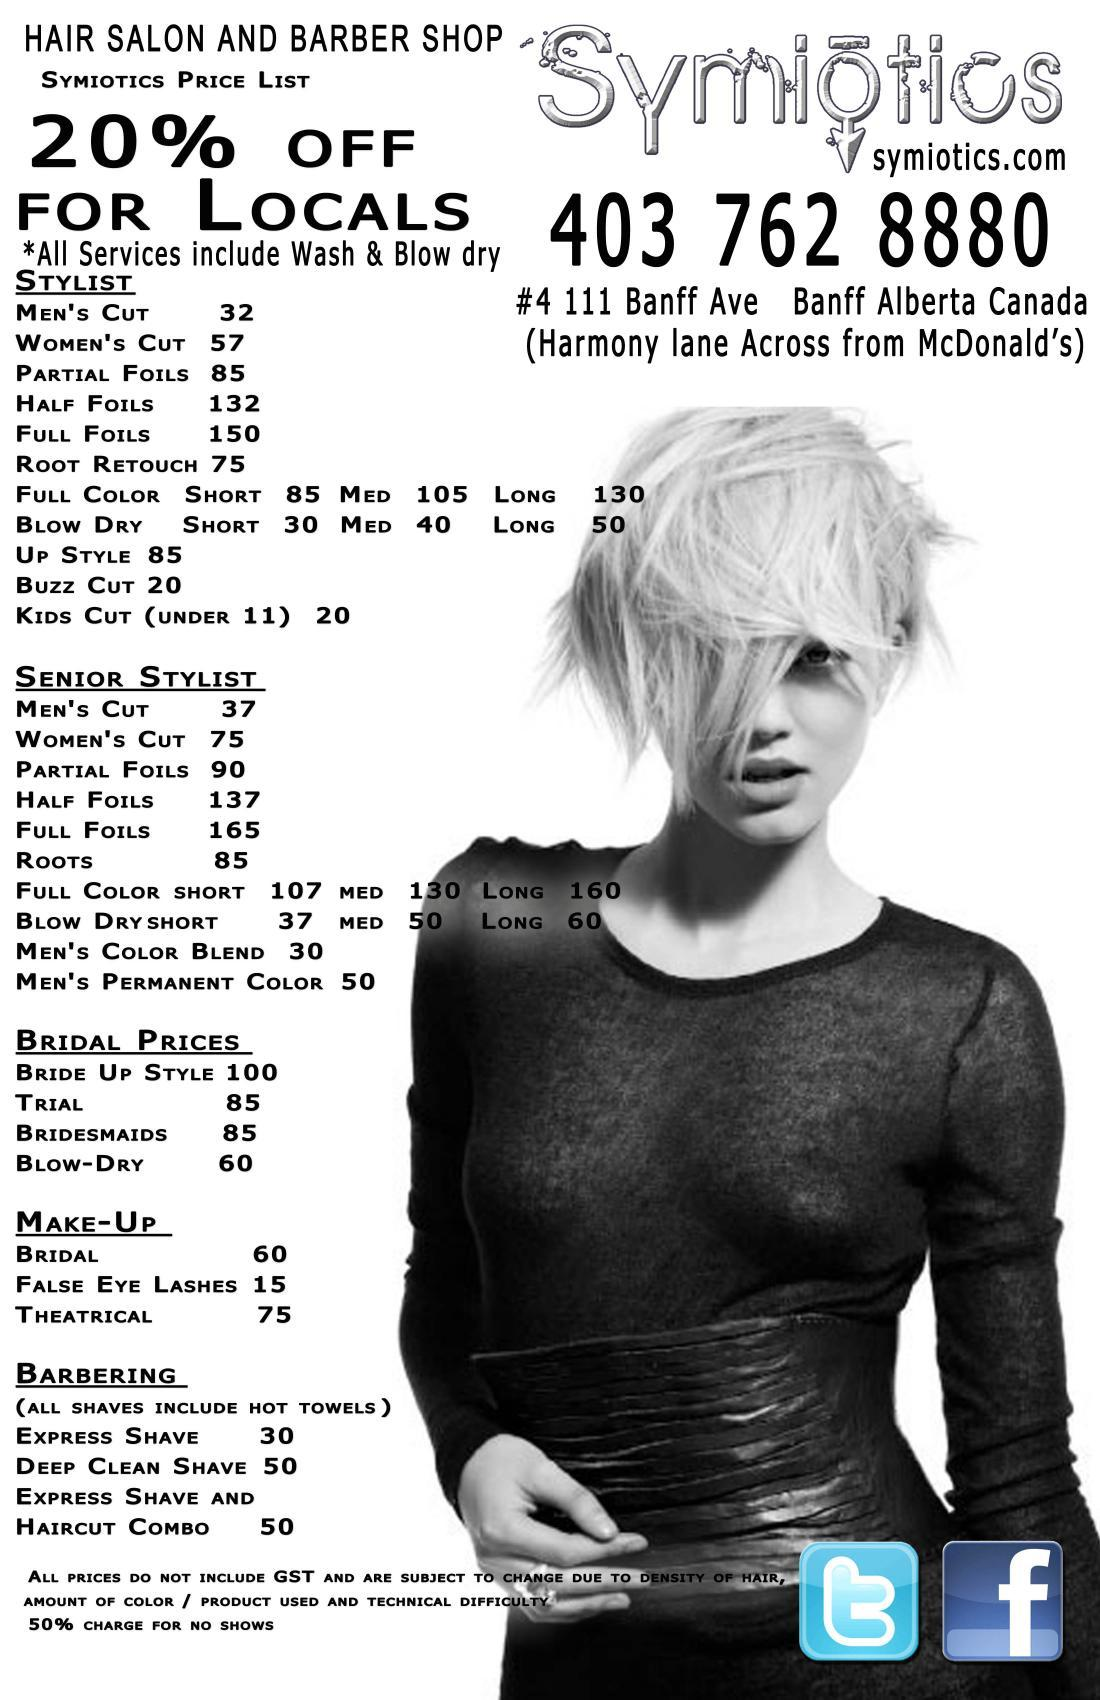 Banff Hair Salon Barber Symiotics Pricelist 2017 Ch 1531 Jpg